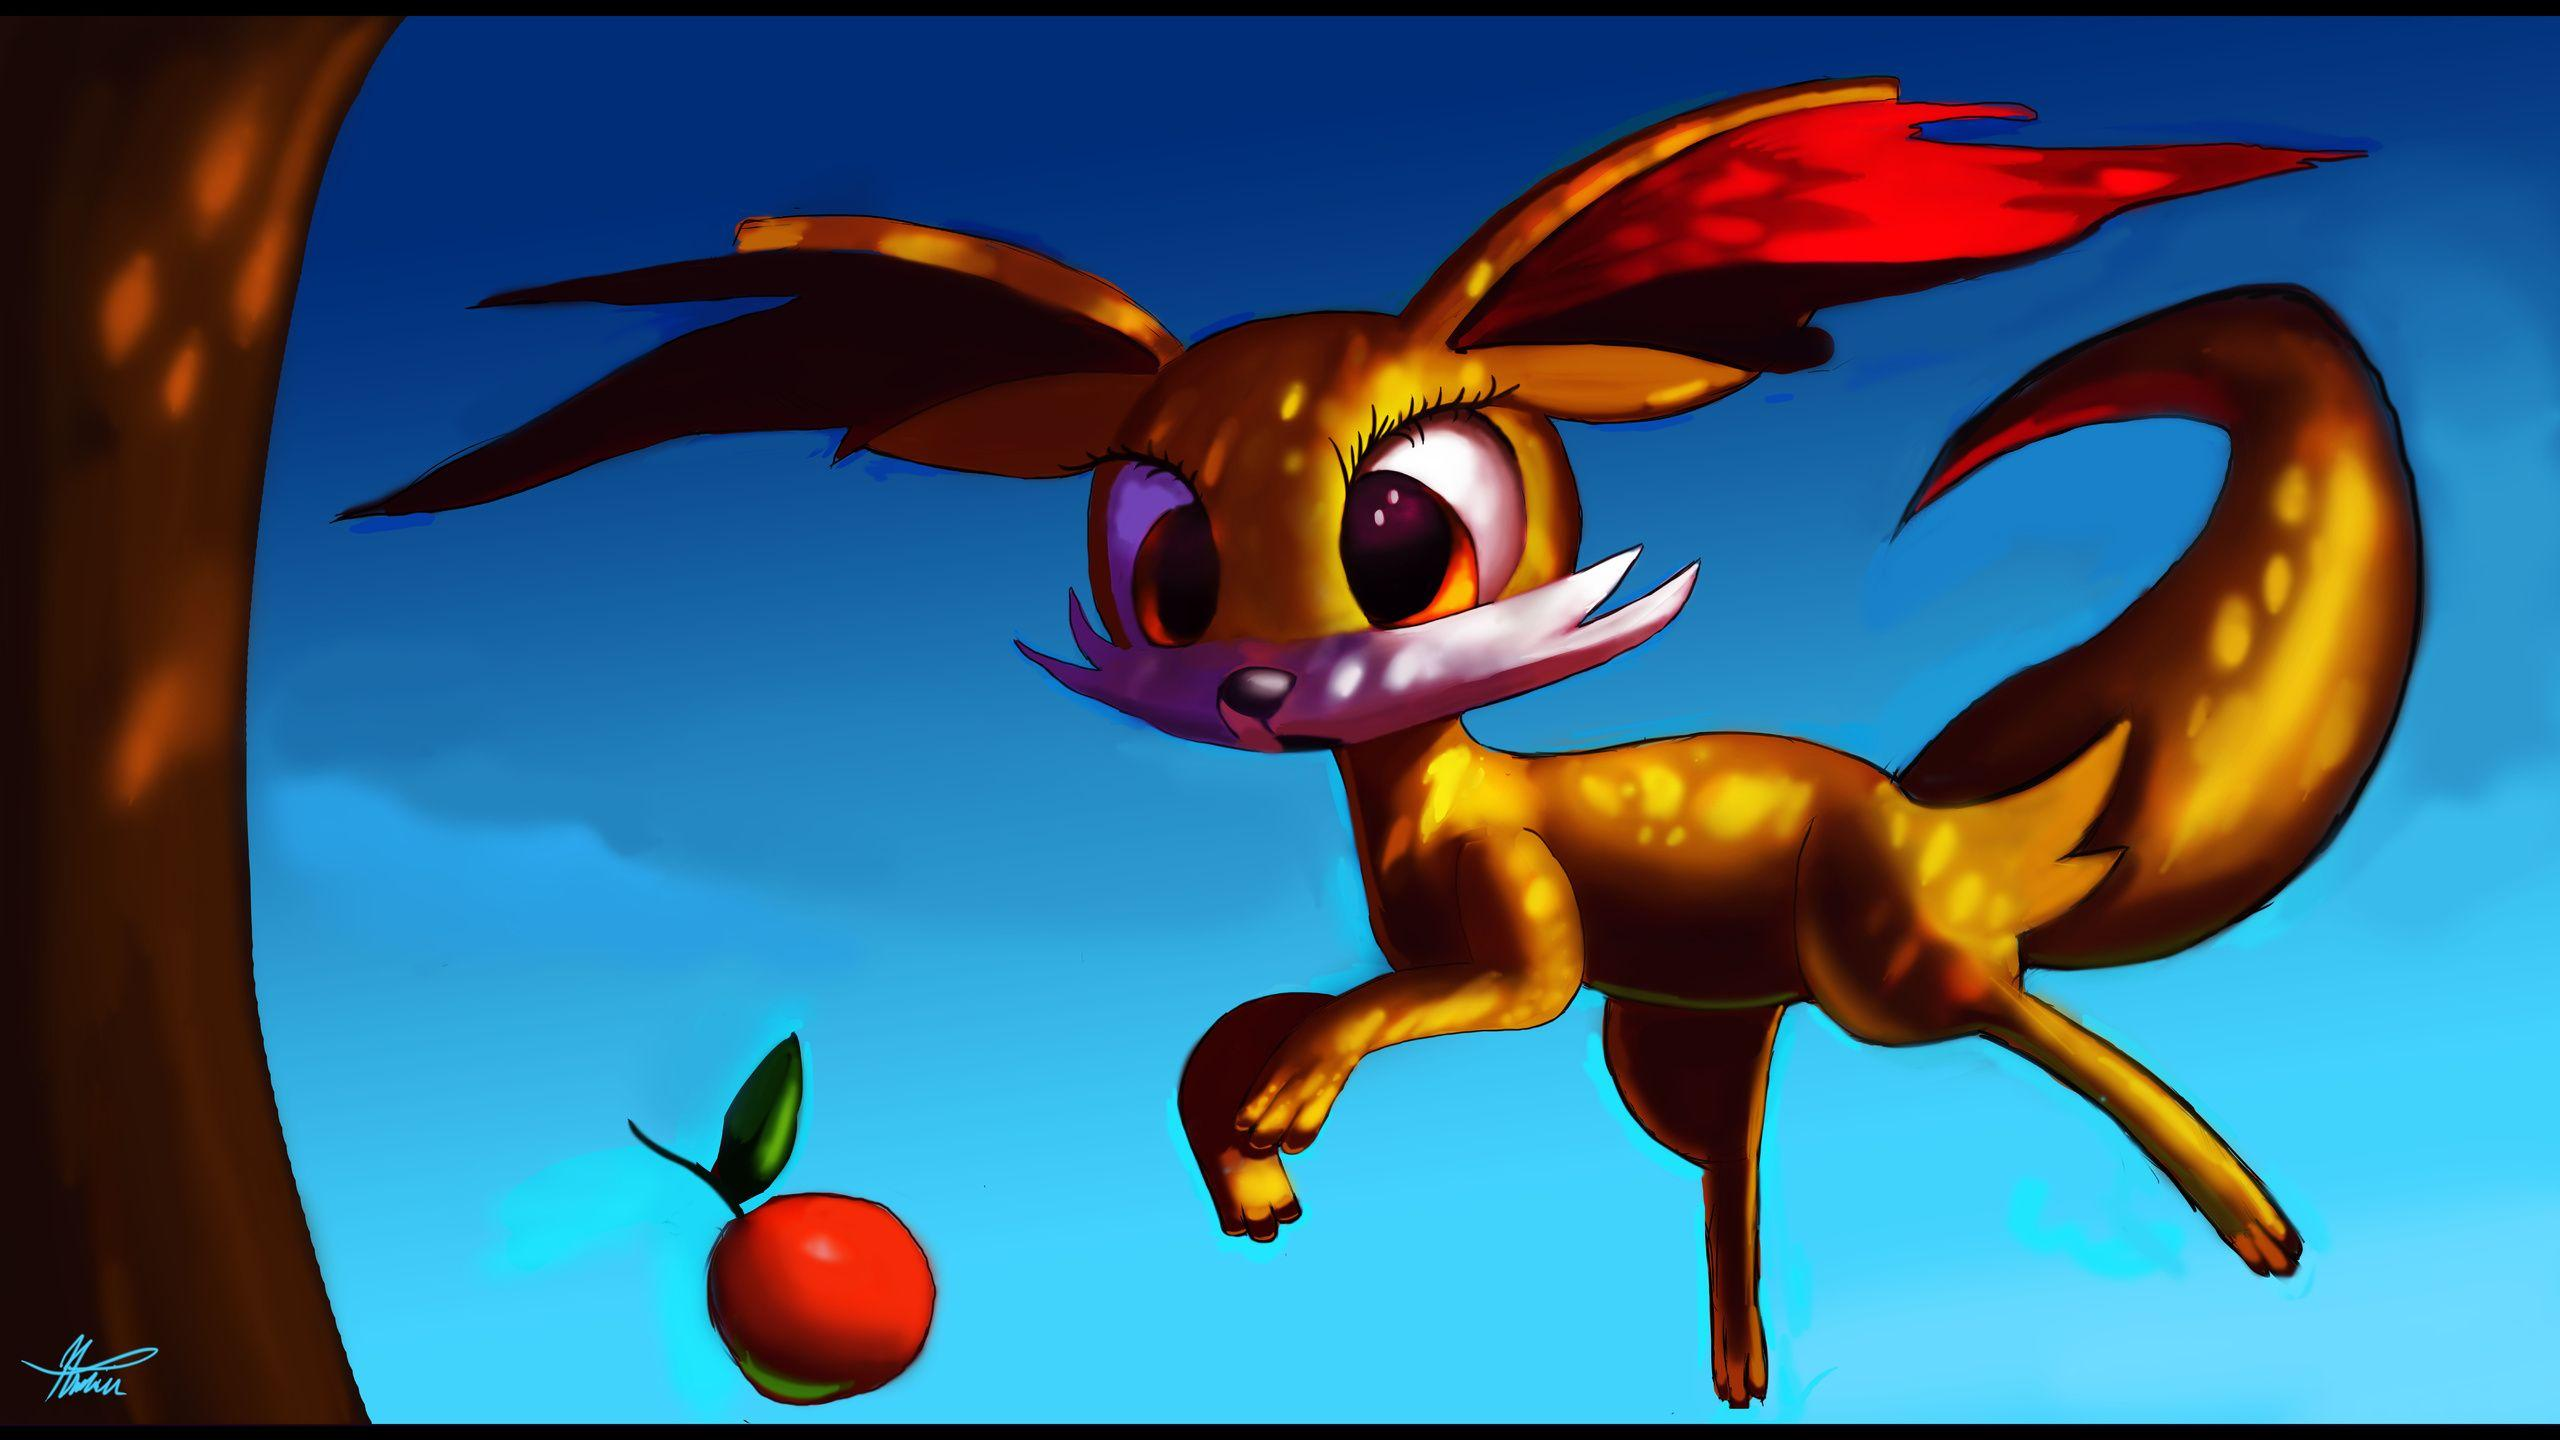 2560x1440 Fennekin, Pokemons, Pokemon Fennekin Wallpapers and ...